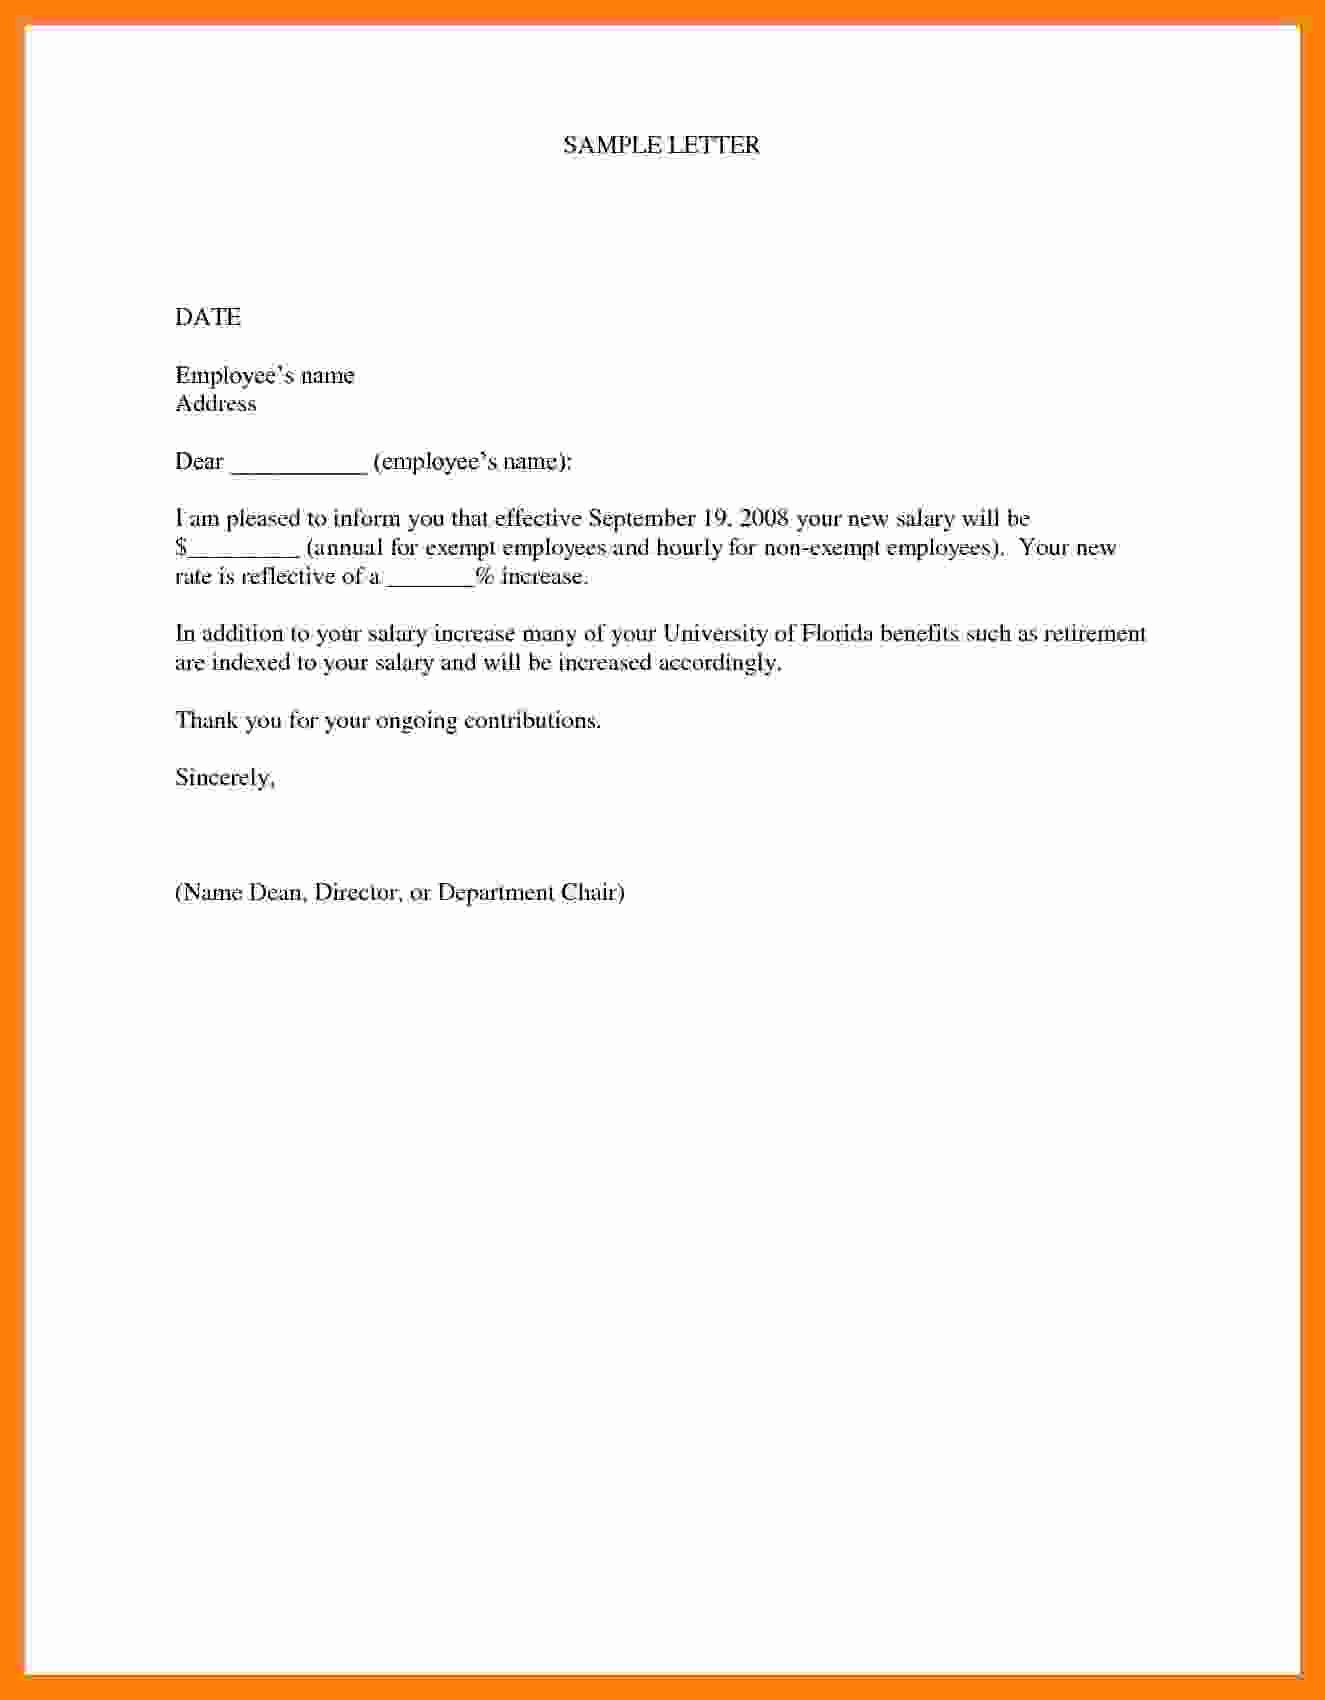 Salary Increase Letter Template Luxury 7 Salary Increase Letter Template From Employer